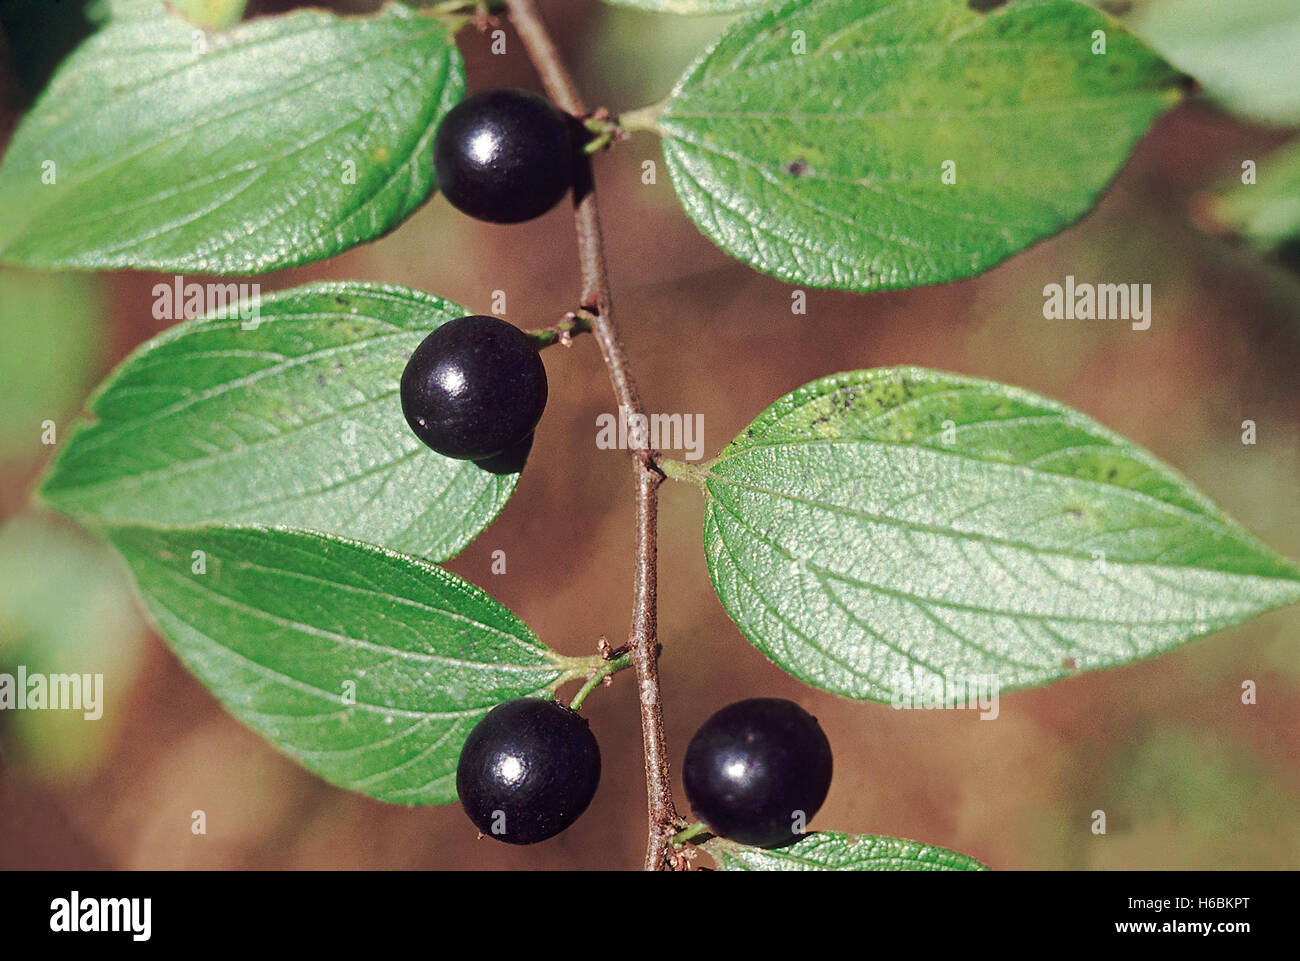 Zizyphus Oenoplia. Family: Rhamnaceae. A large rambling shrub with small edible fruit which is the staple diet of - Stock Image